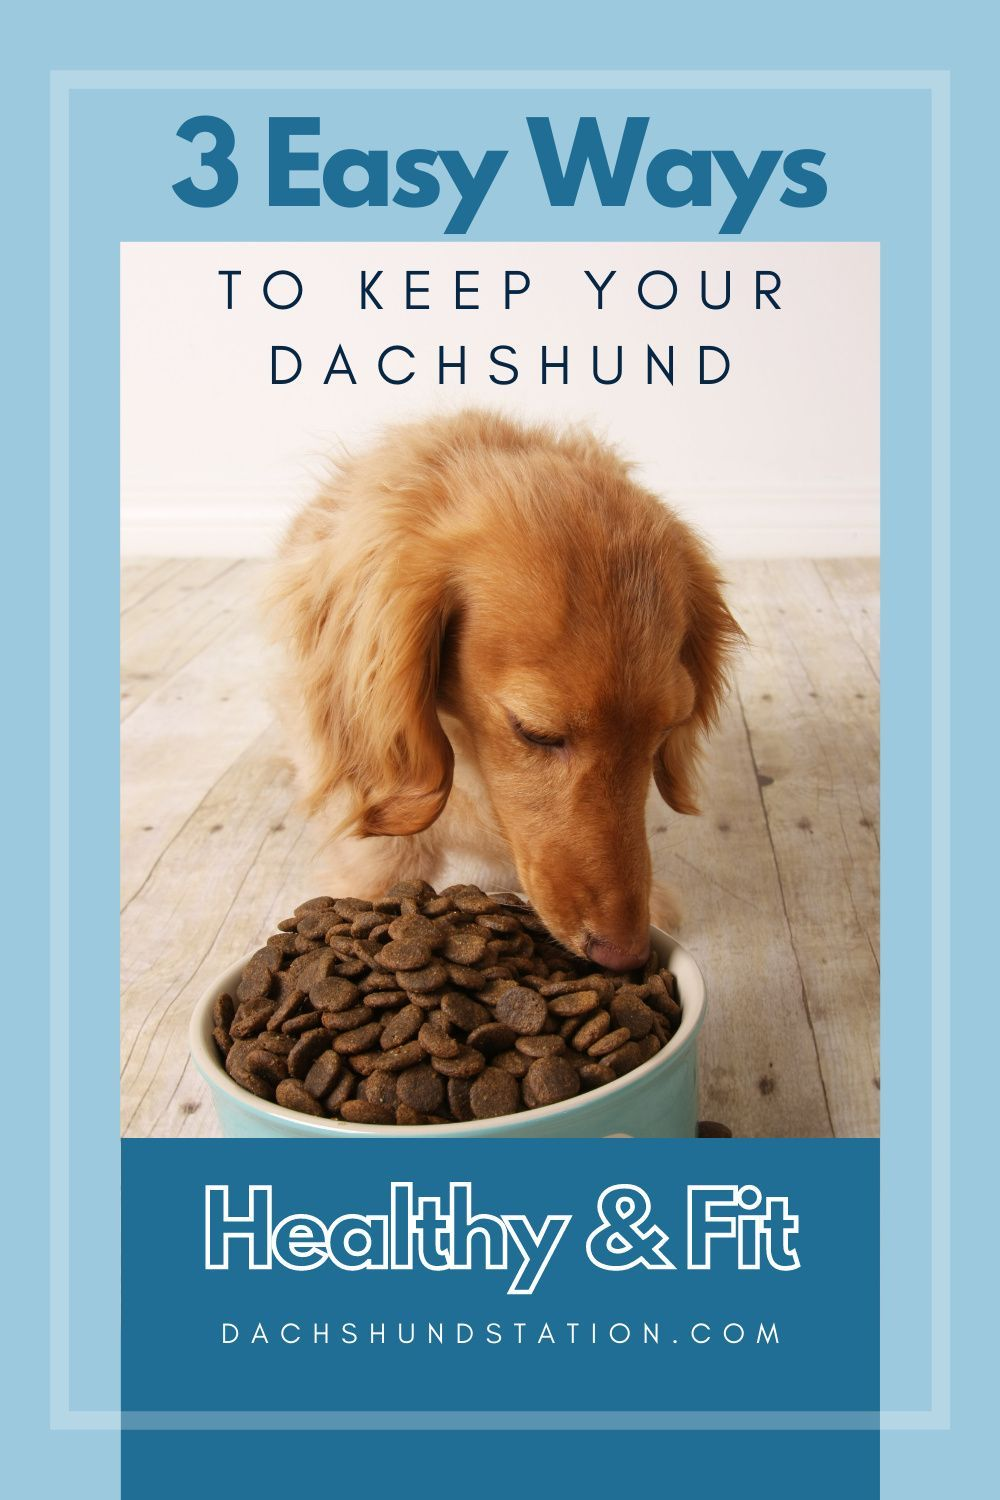 Super Simple Ways To Keep Your Dachshund Healthy Dachshund Station Dachshund Puppies Adoptable Dachshund Dog Dachshund Puppy Training